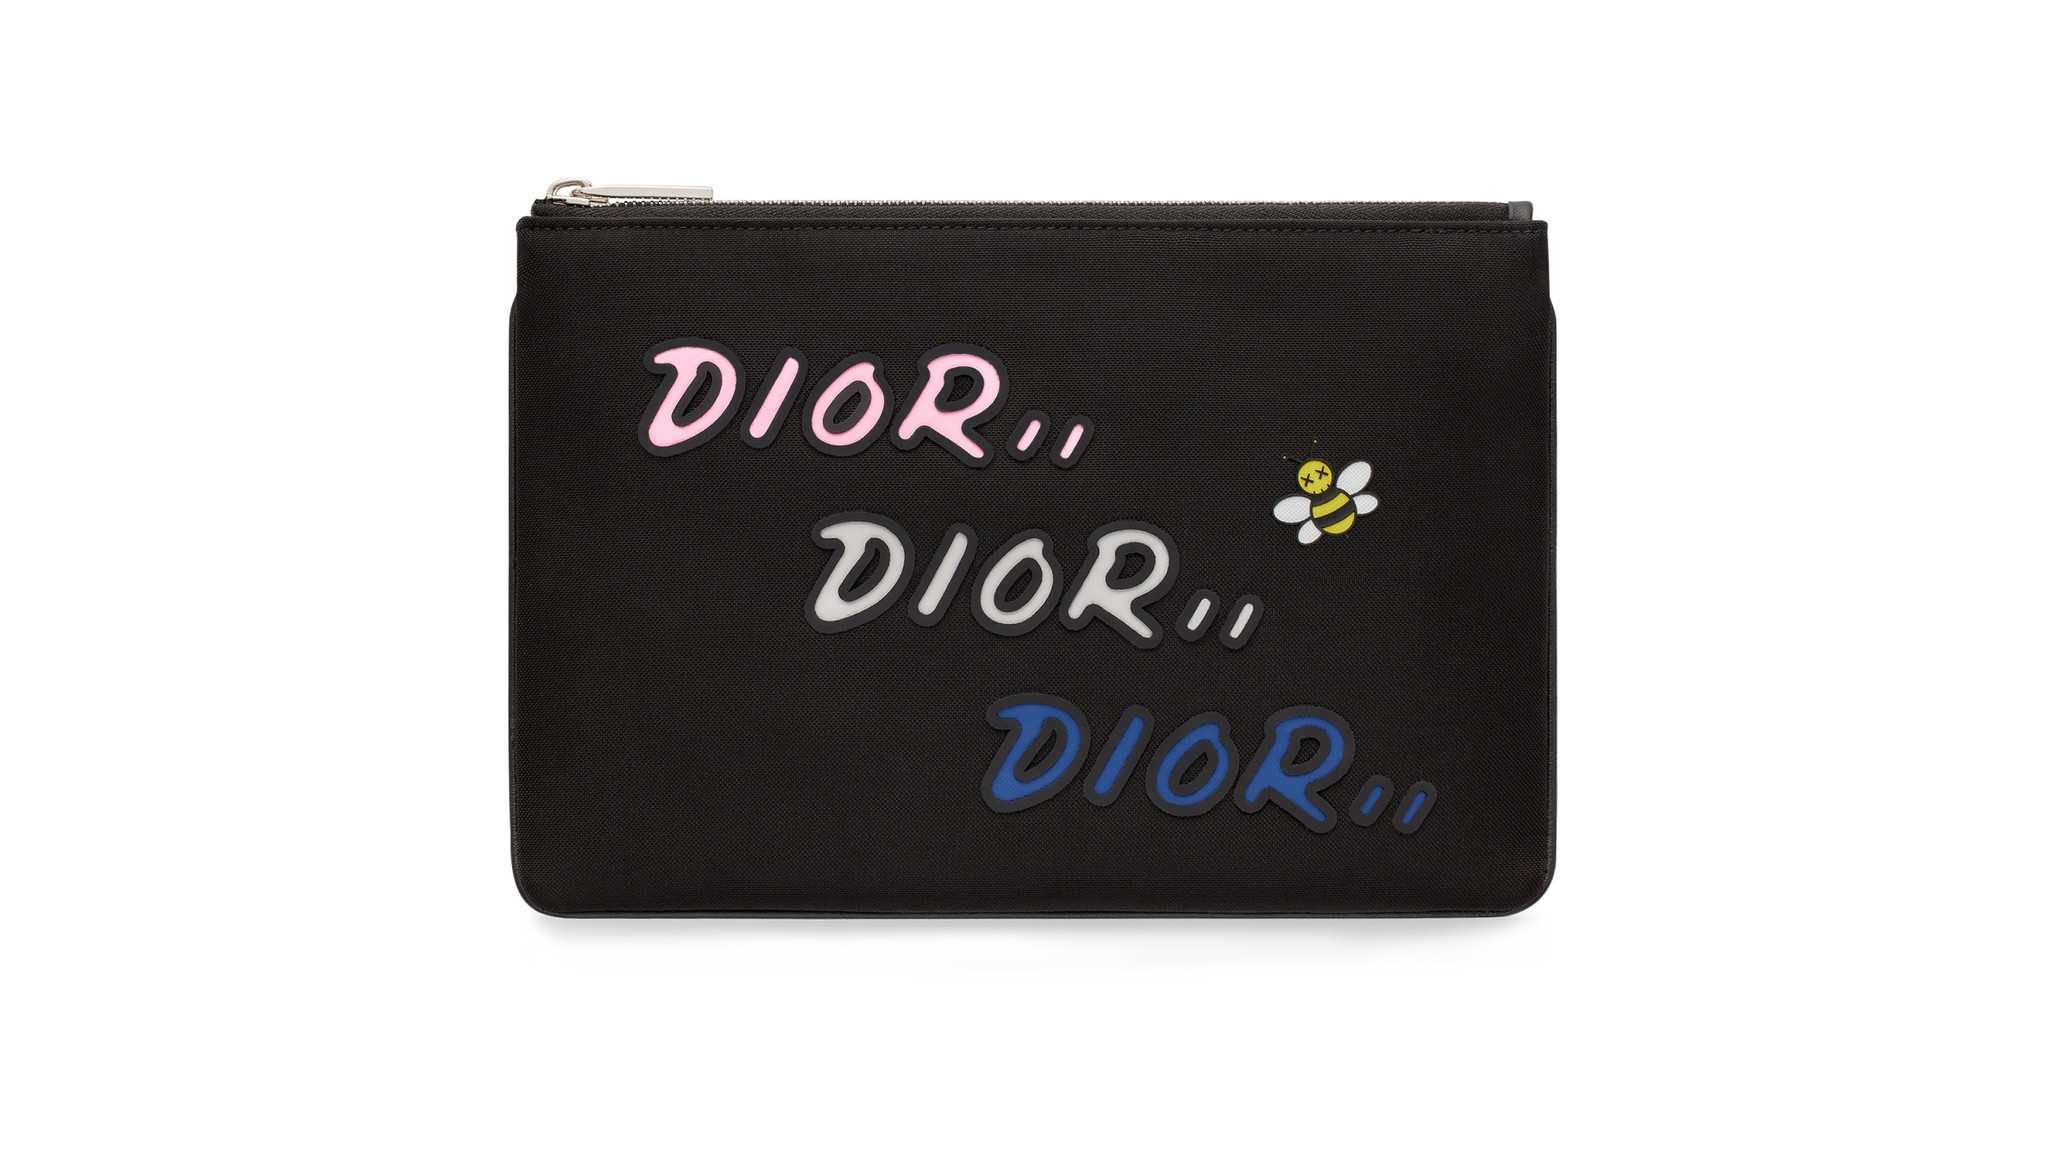 Dior Men KAWS leather zip pouch, $550 at Dior Men in Beverly Hills and Maxfield in West Hollywood